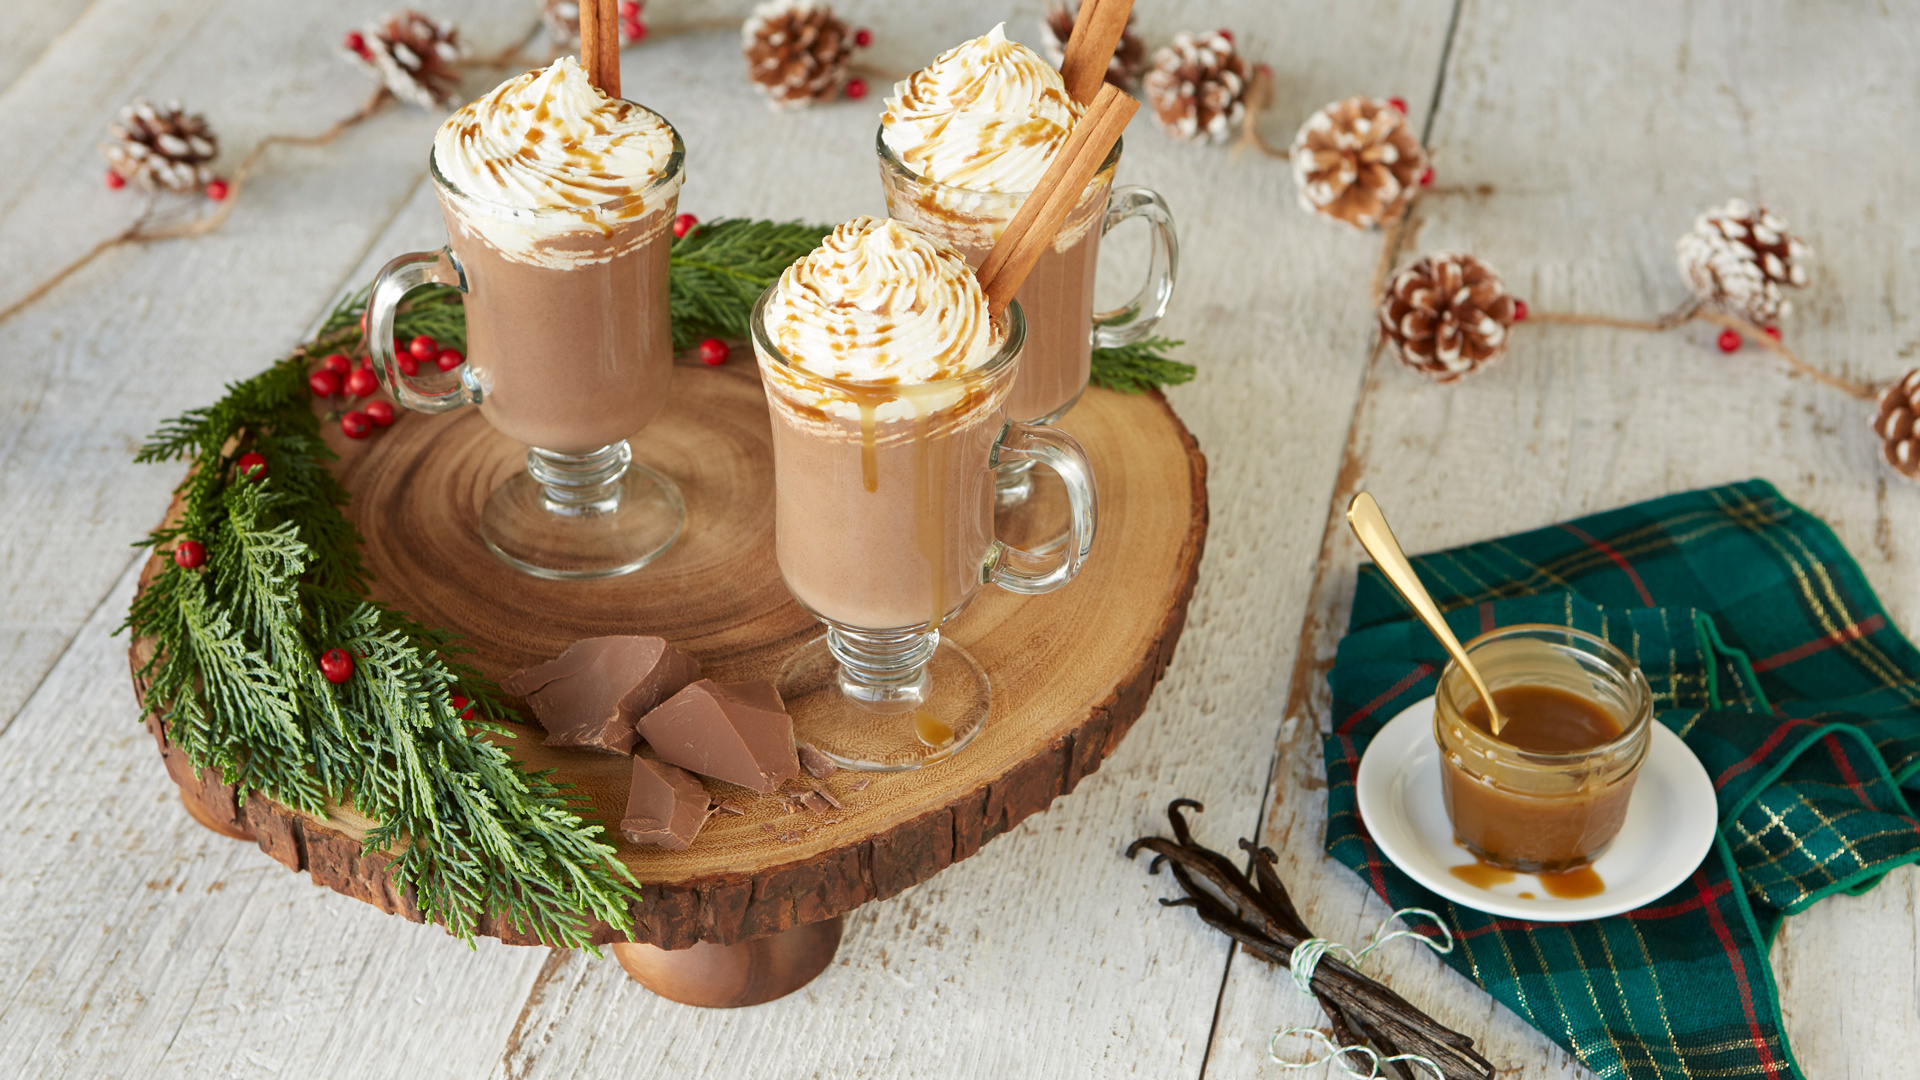 Chef Lynn Crawford's spiced rum chocolate caramel eggnog